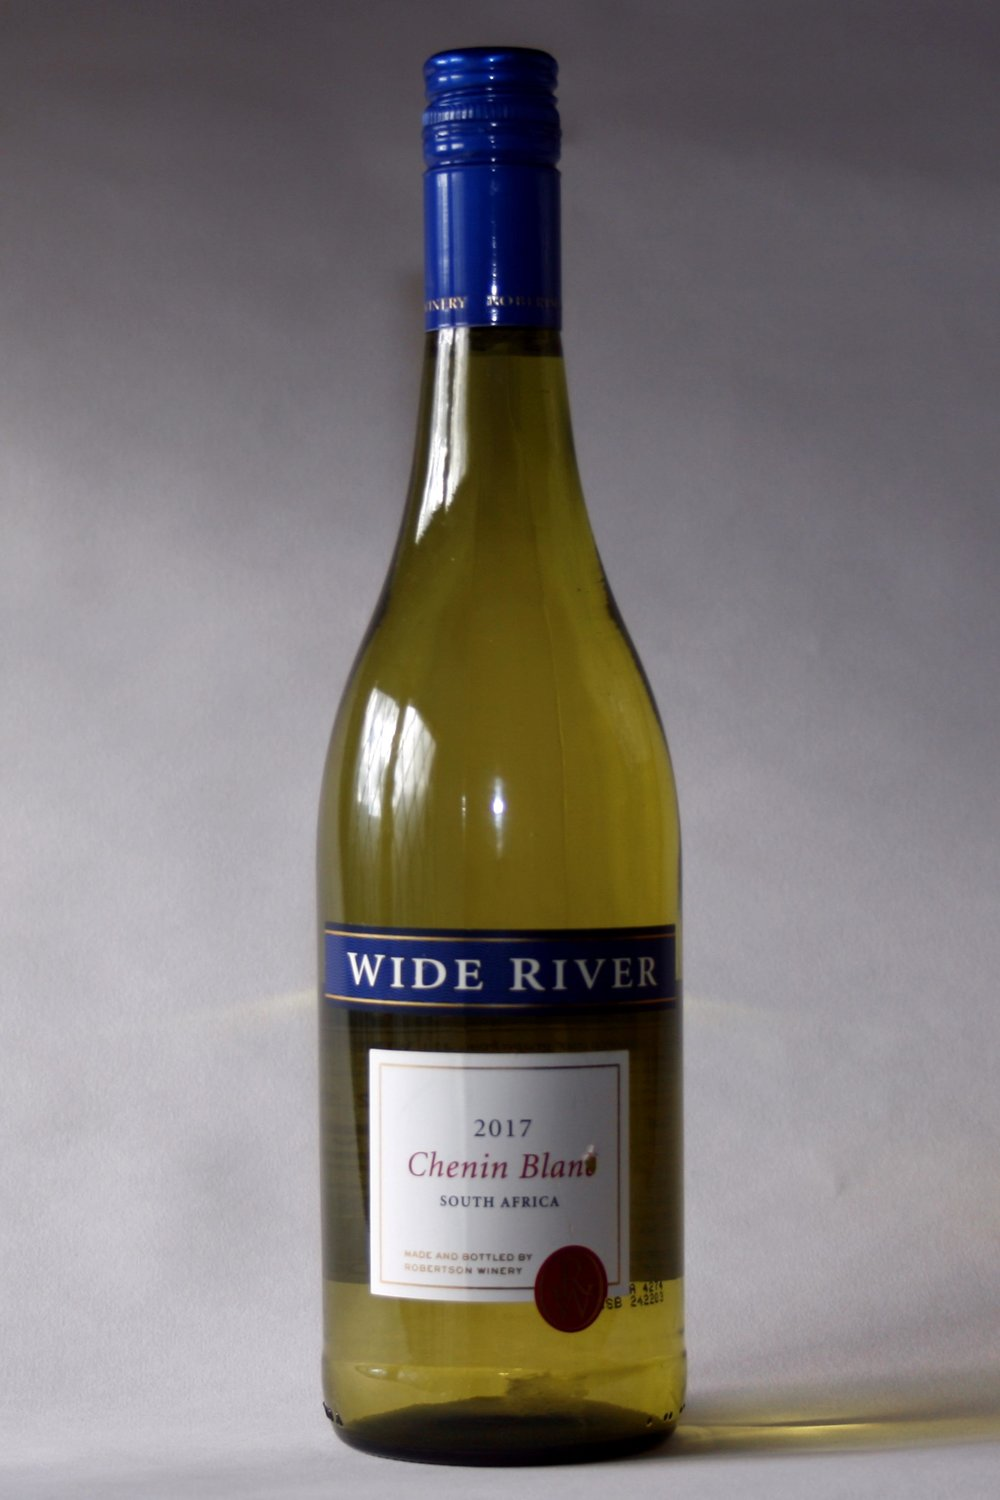 Wide River, S.A., Chenin Balnc - DETAILS TO COME